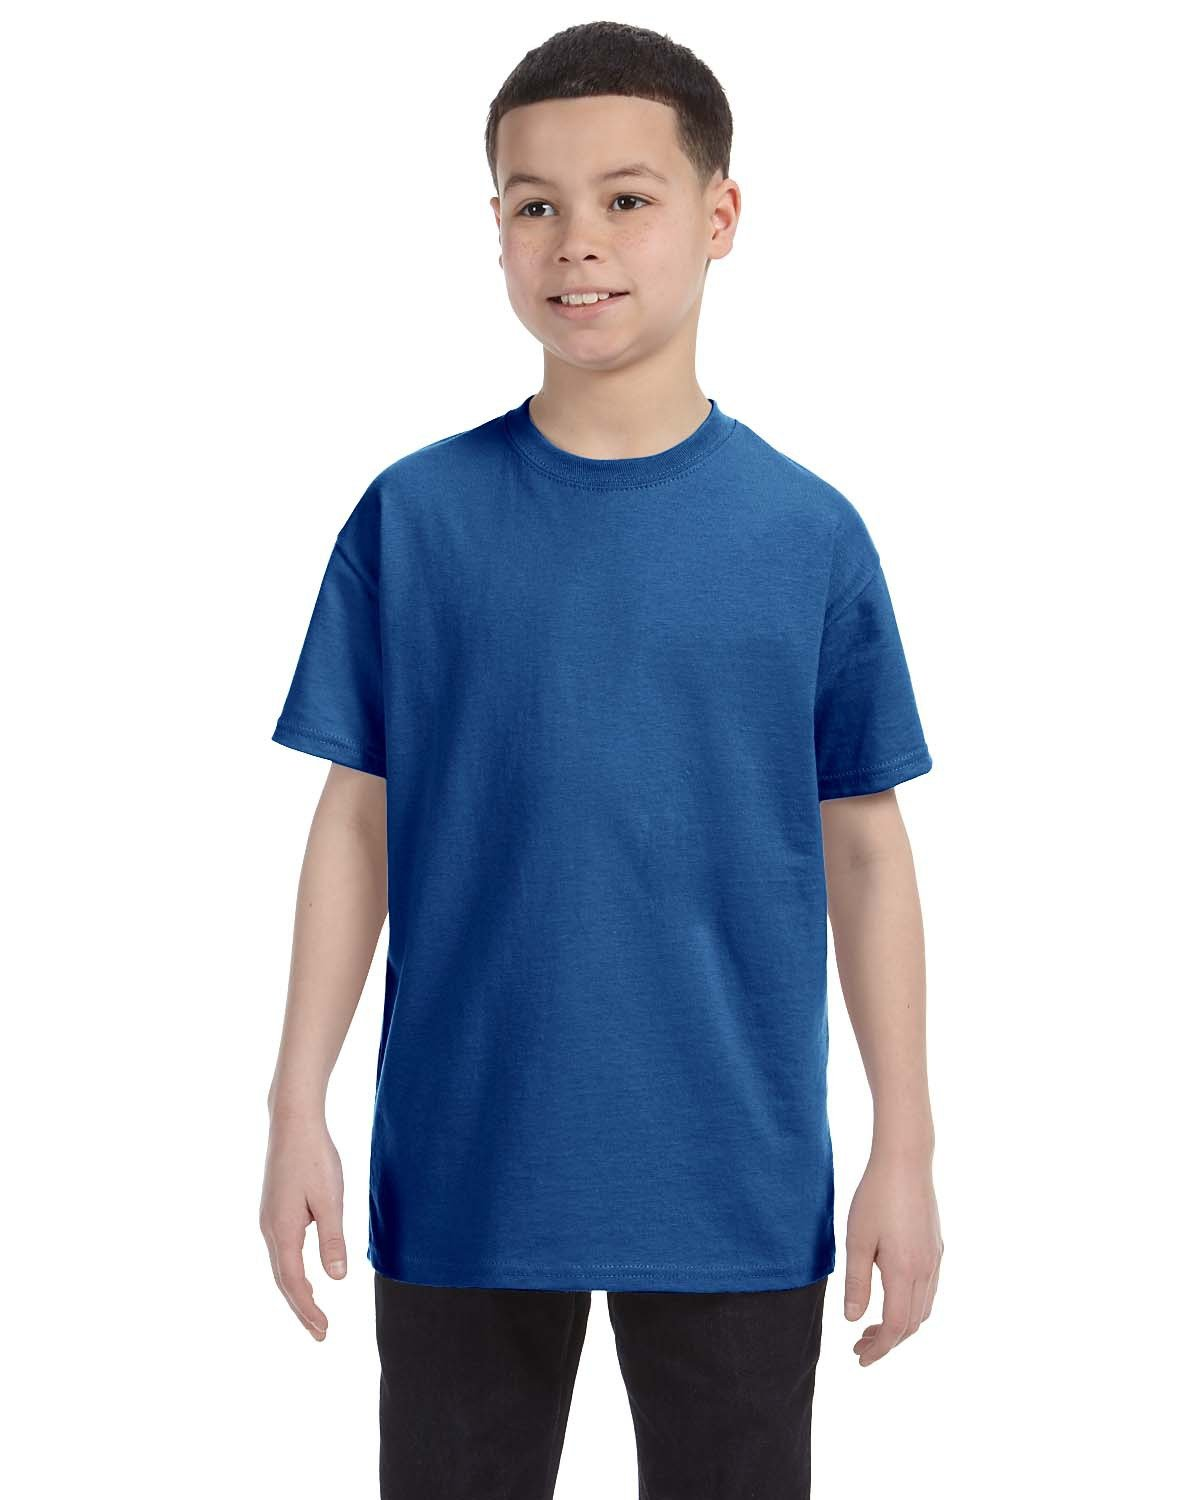 Hanes Youth Authentic-T T-Shirt DEEP ROYAL